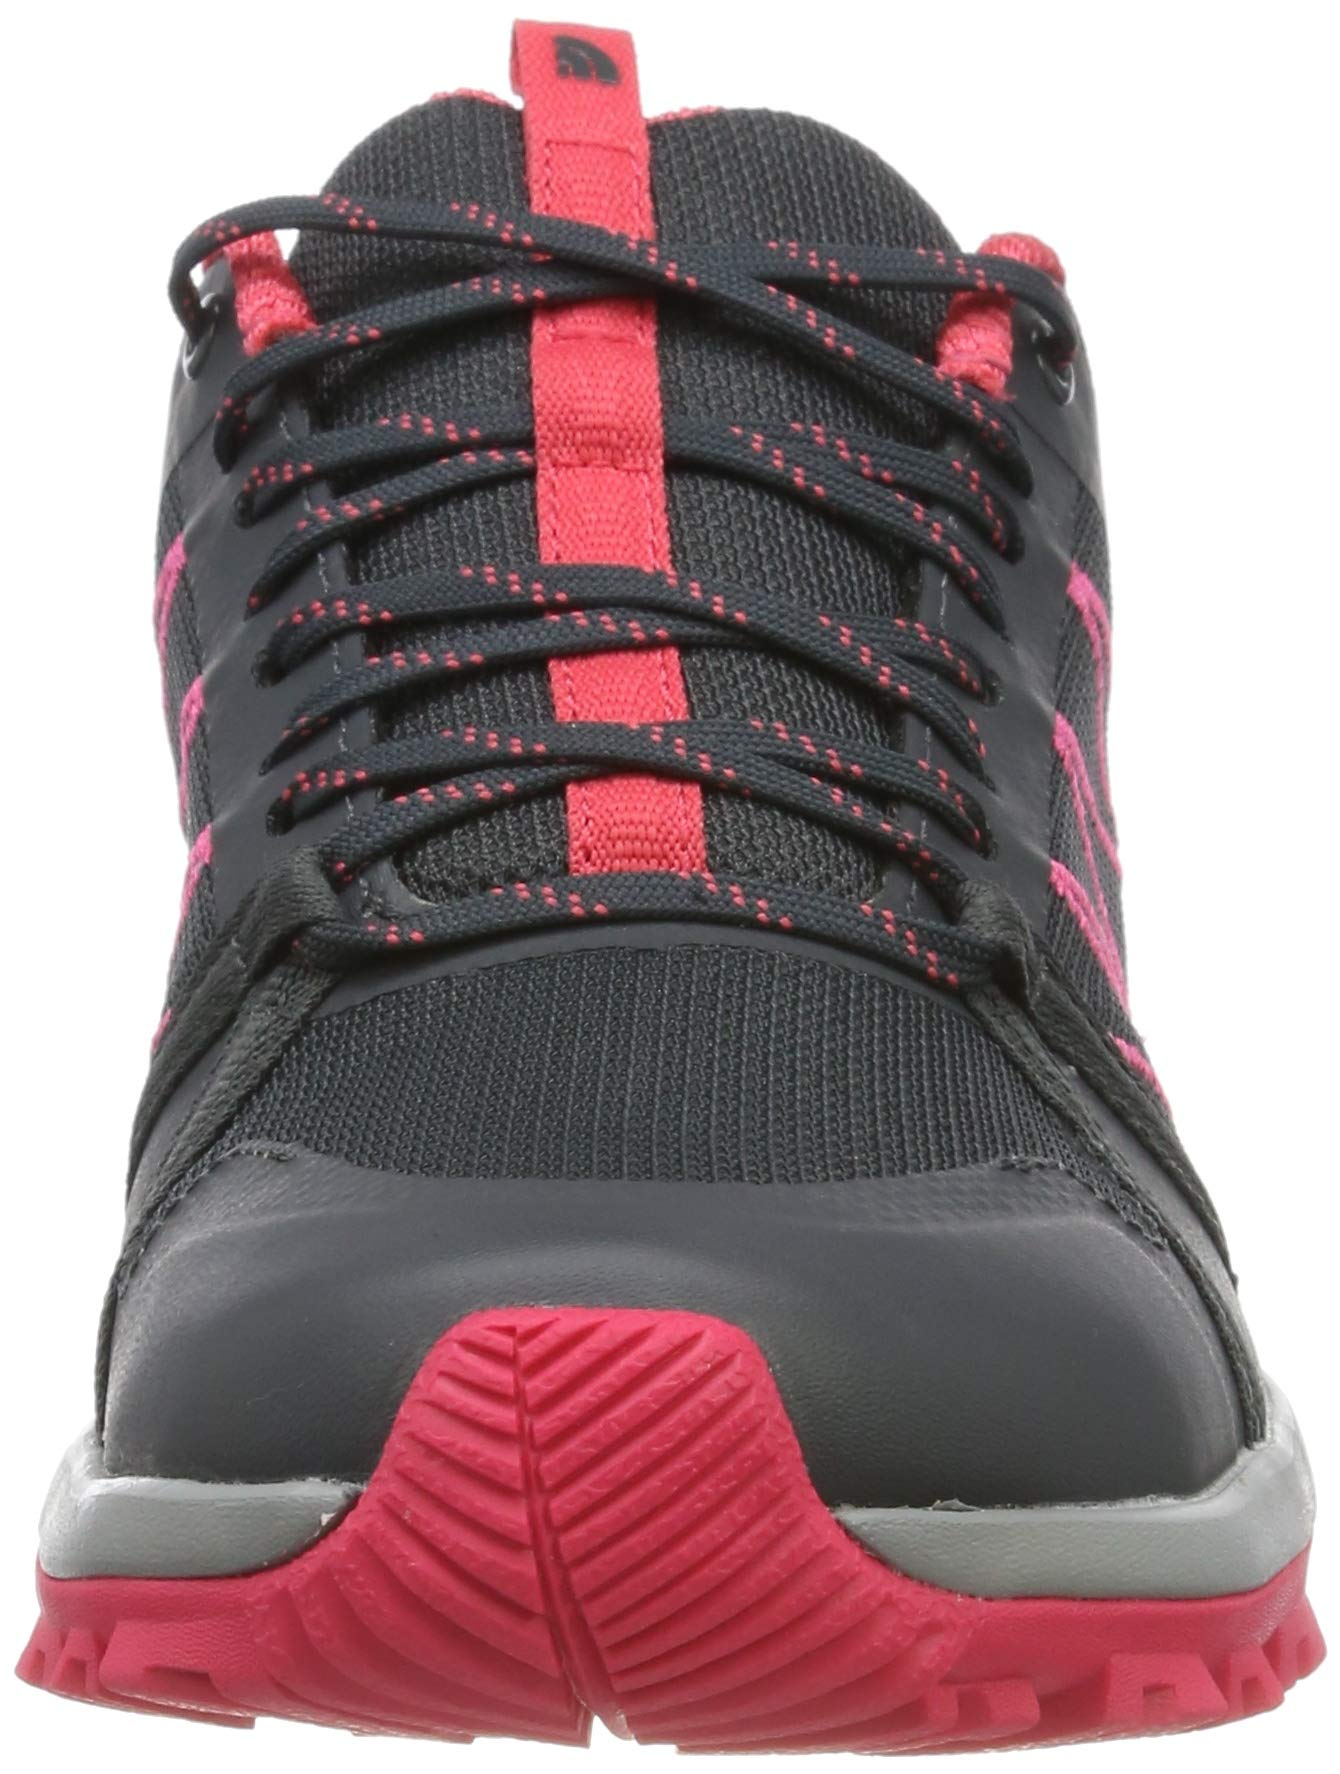 THE NORTH FACE Women's W Litewave Fastpack Ii Low Rise Hiking Boots 4